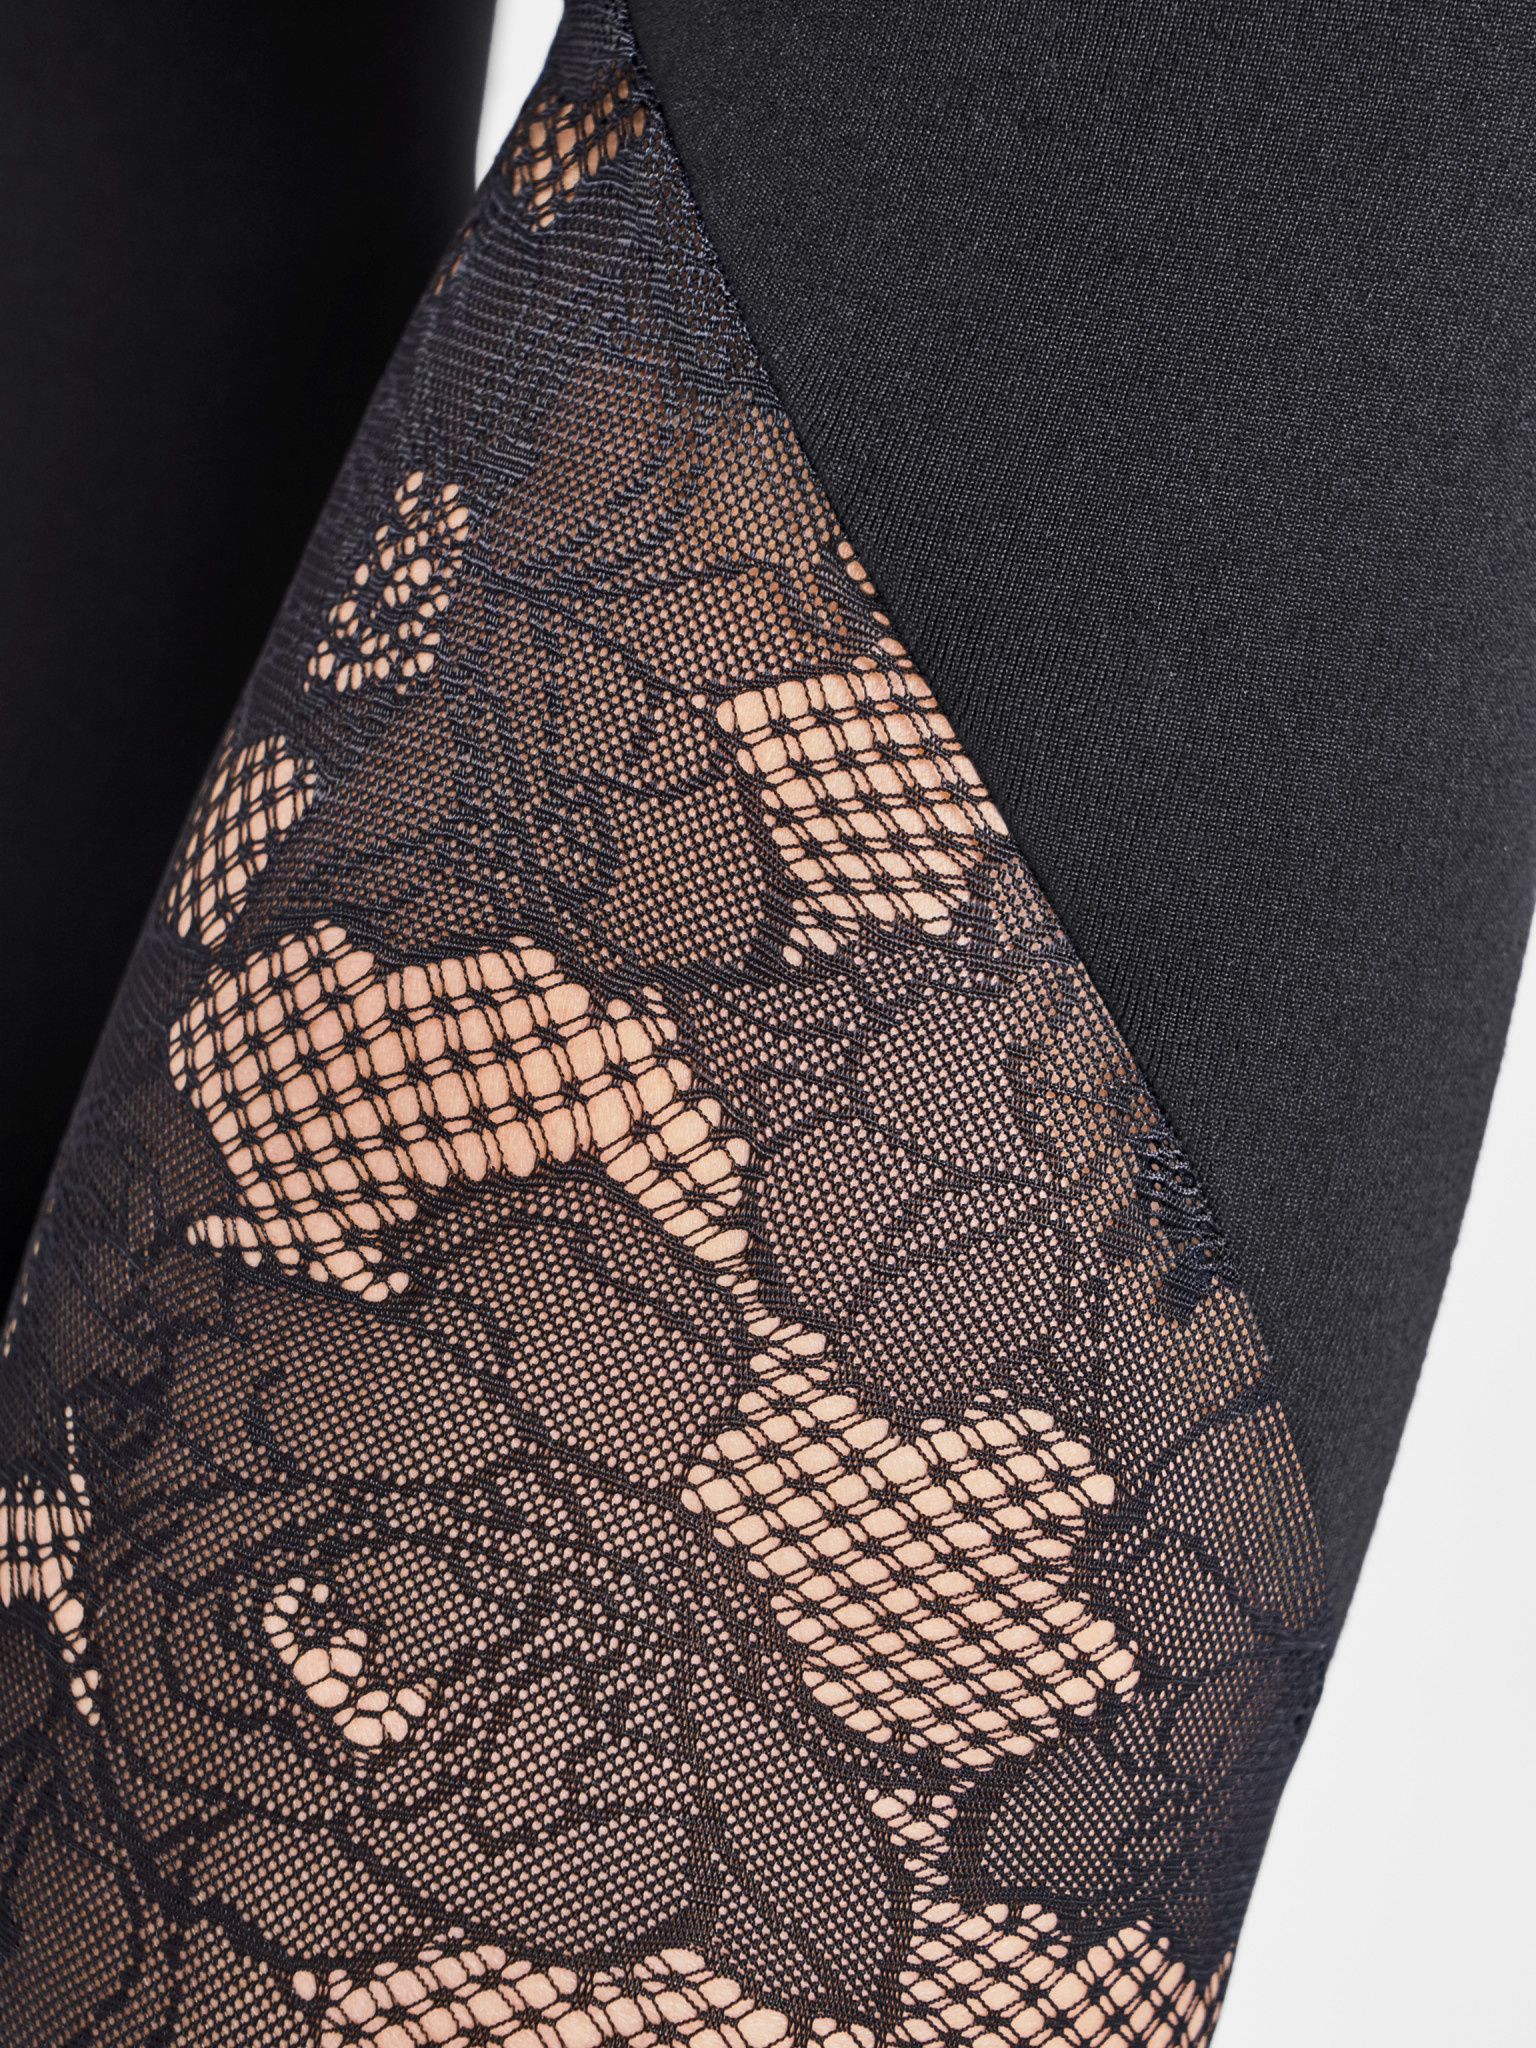 WOLFORD 14813 Perfect Fit Lace Leggings